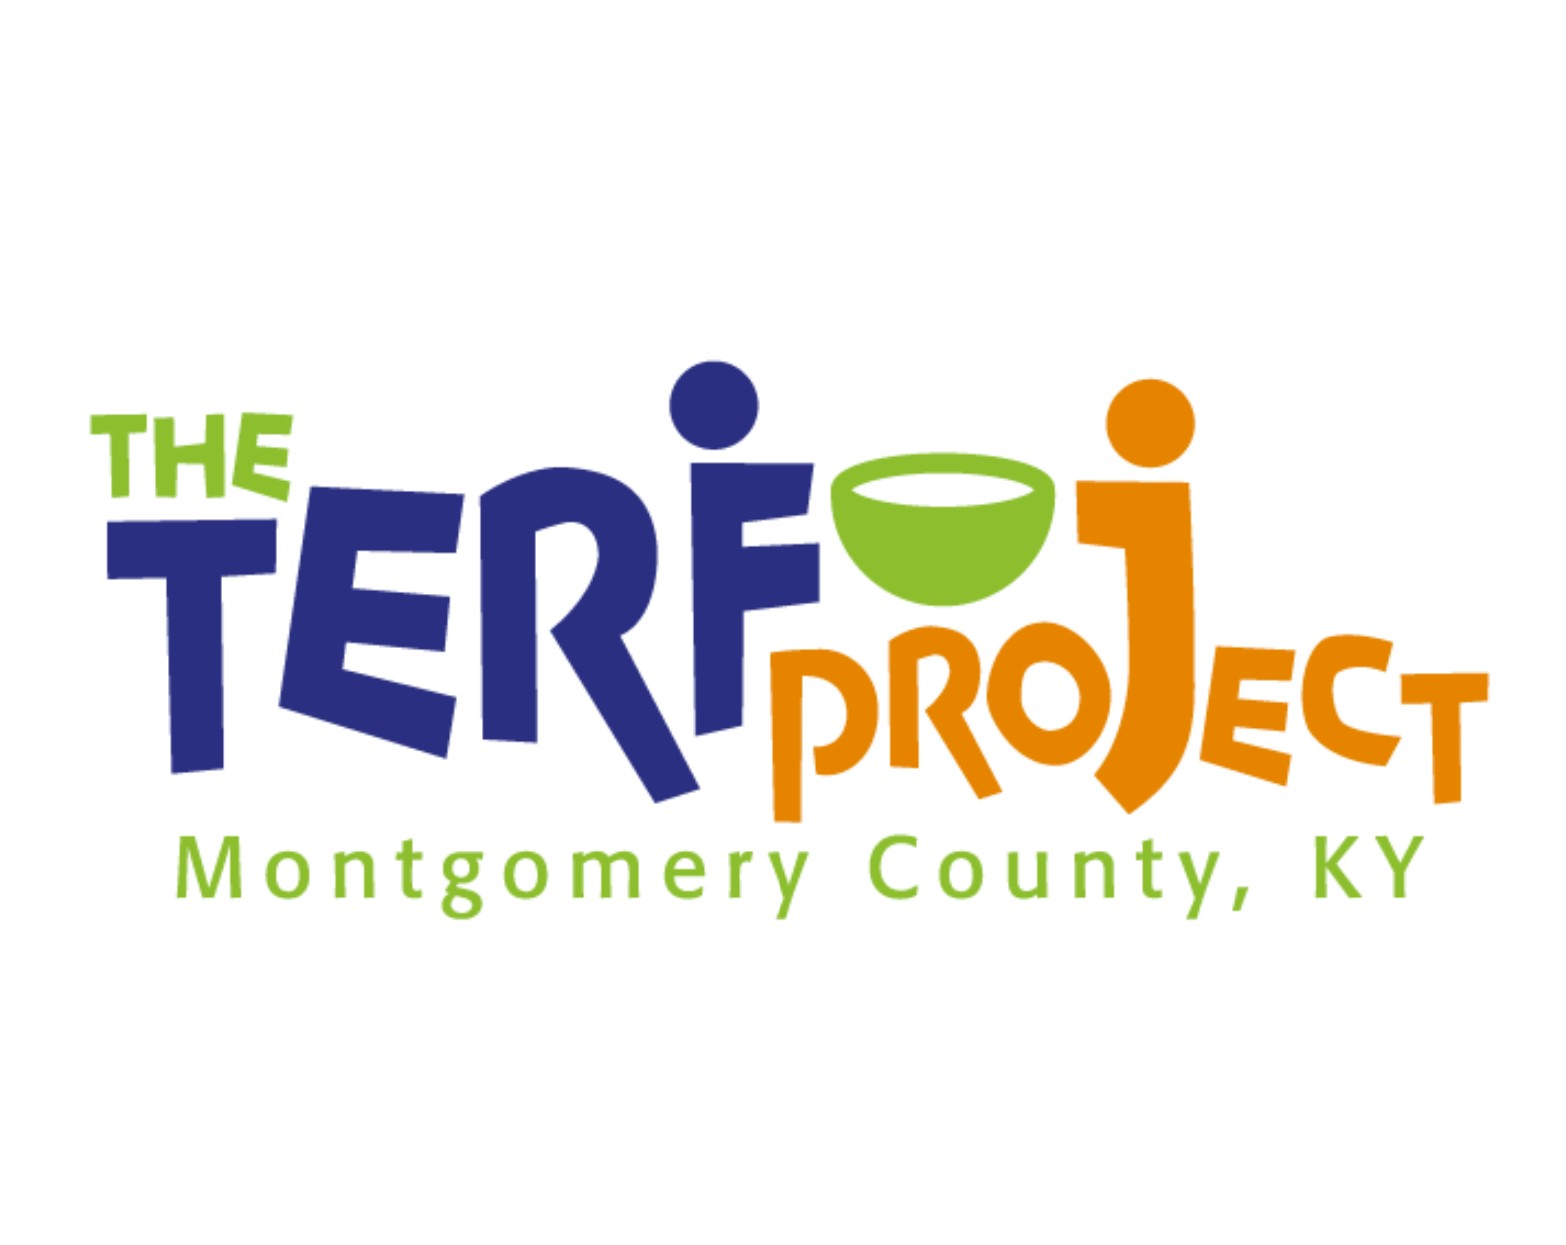 The TERF Project via First Christian Church of Mt. Sterling, KY